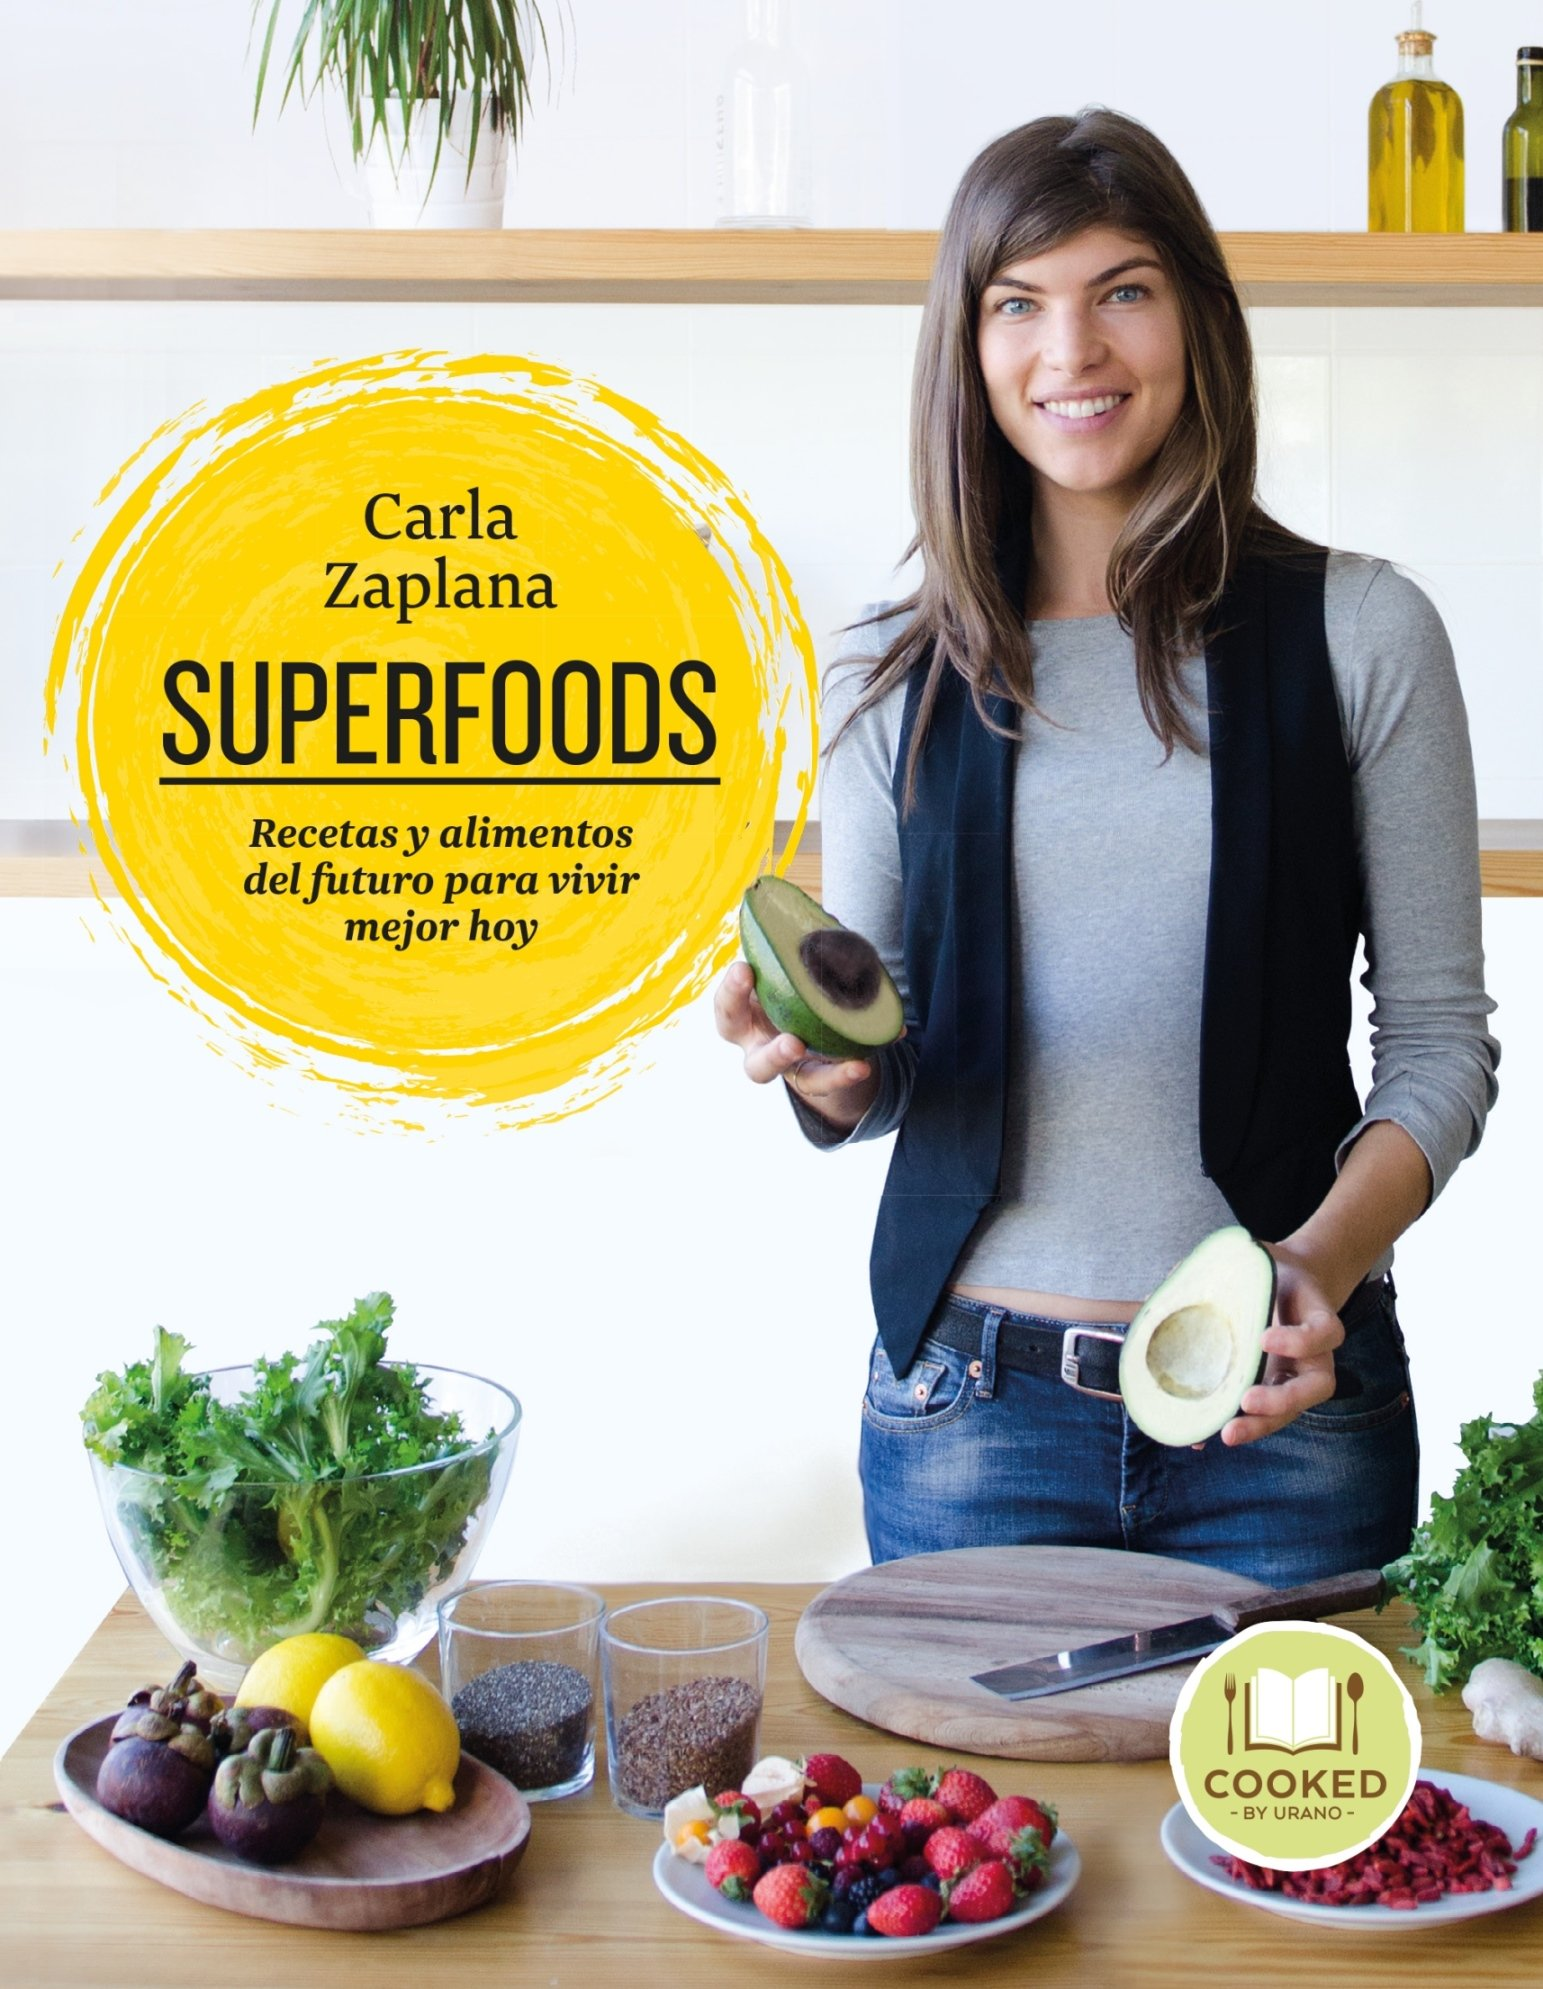 Superfoods (Spanish Edition): Carla Zaplana: 9788416720248: Amazon.com: Books